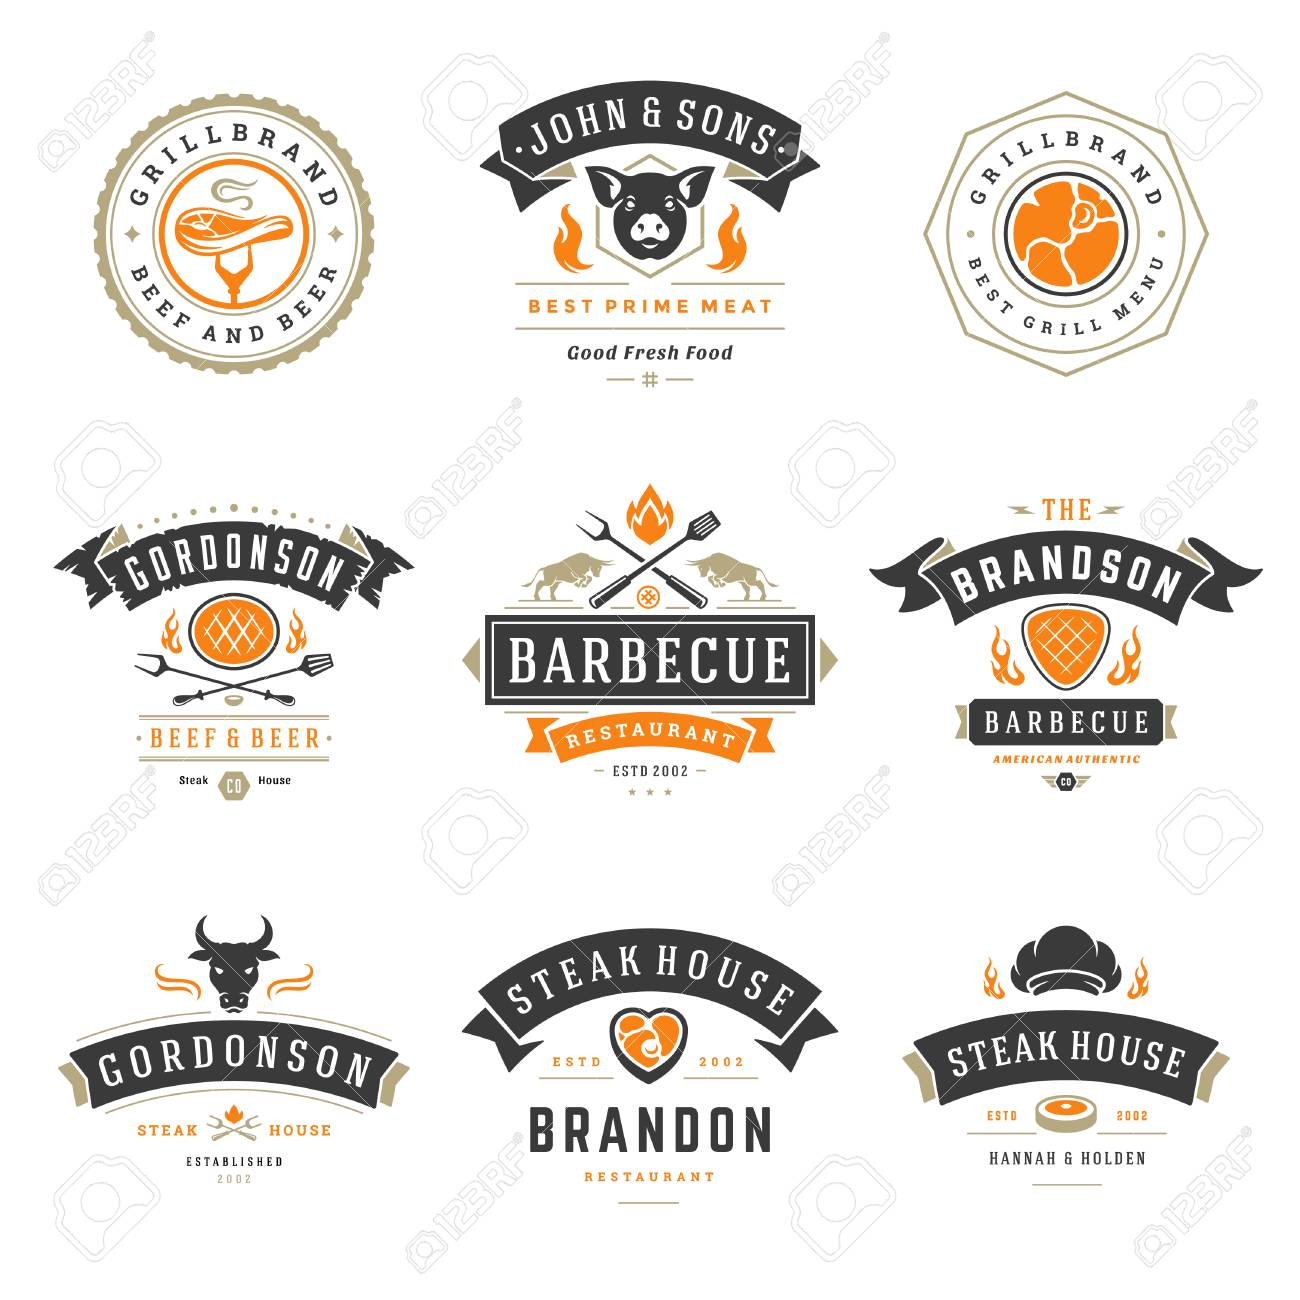 Barbecue Restaurant Logos And Badges Set Vector Illustration Royalty Free Cliparts Vectors And Stock Illustration Image 98028180